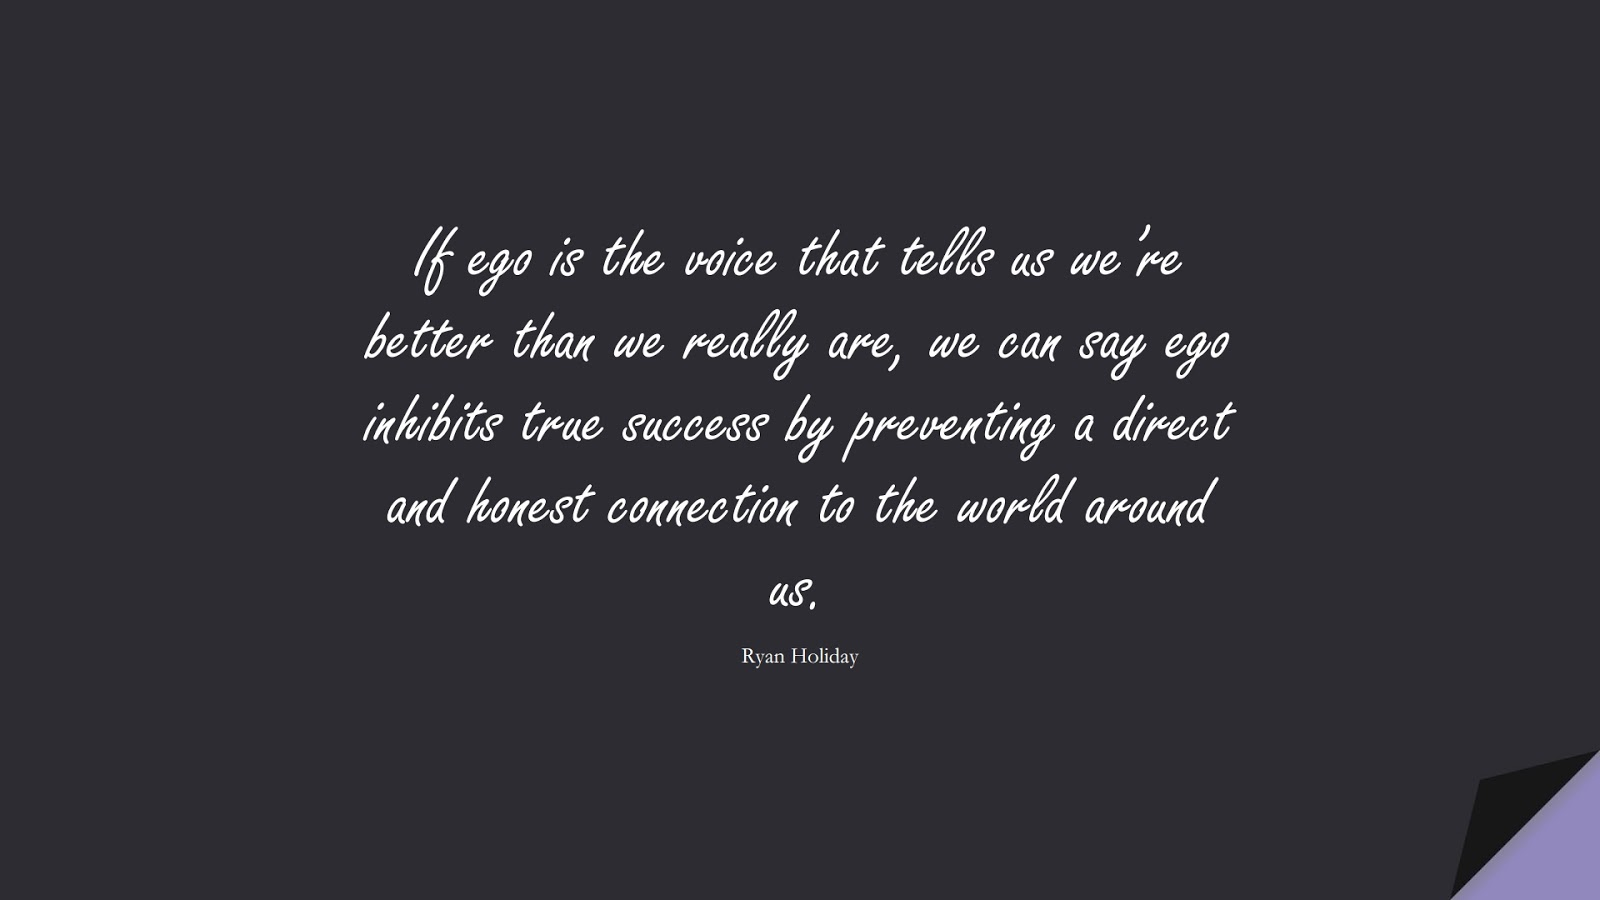 If ego is the voice that tells us we're better than we really are, we can say ego inhibits true success by preventing a direct and honest connection to the world around us. (Ryan Holiday);  #SelfEsteemQuotes